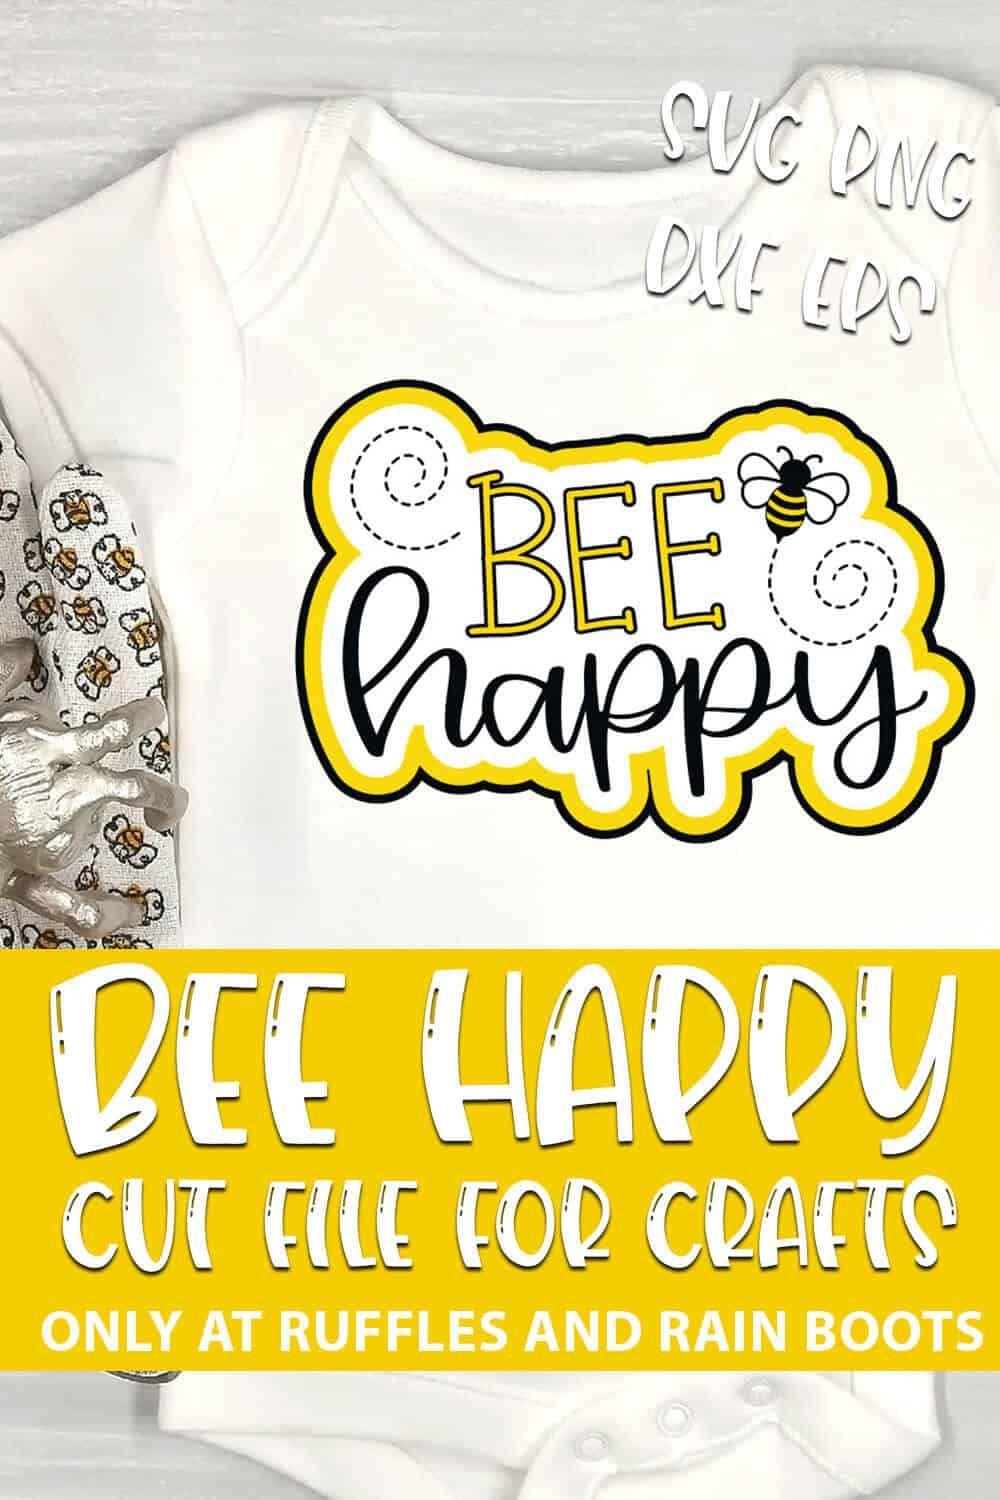 Bee Happy Cut File for cricut or silhouette with text which reads bee happy cut file for crafts